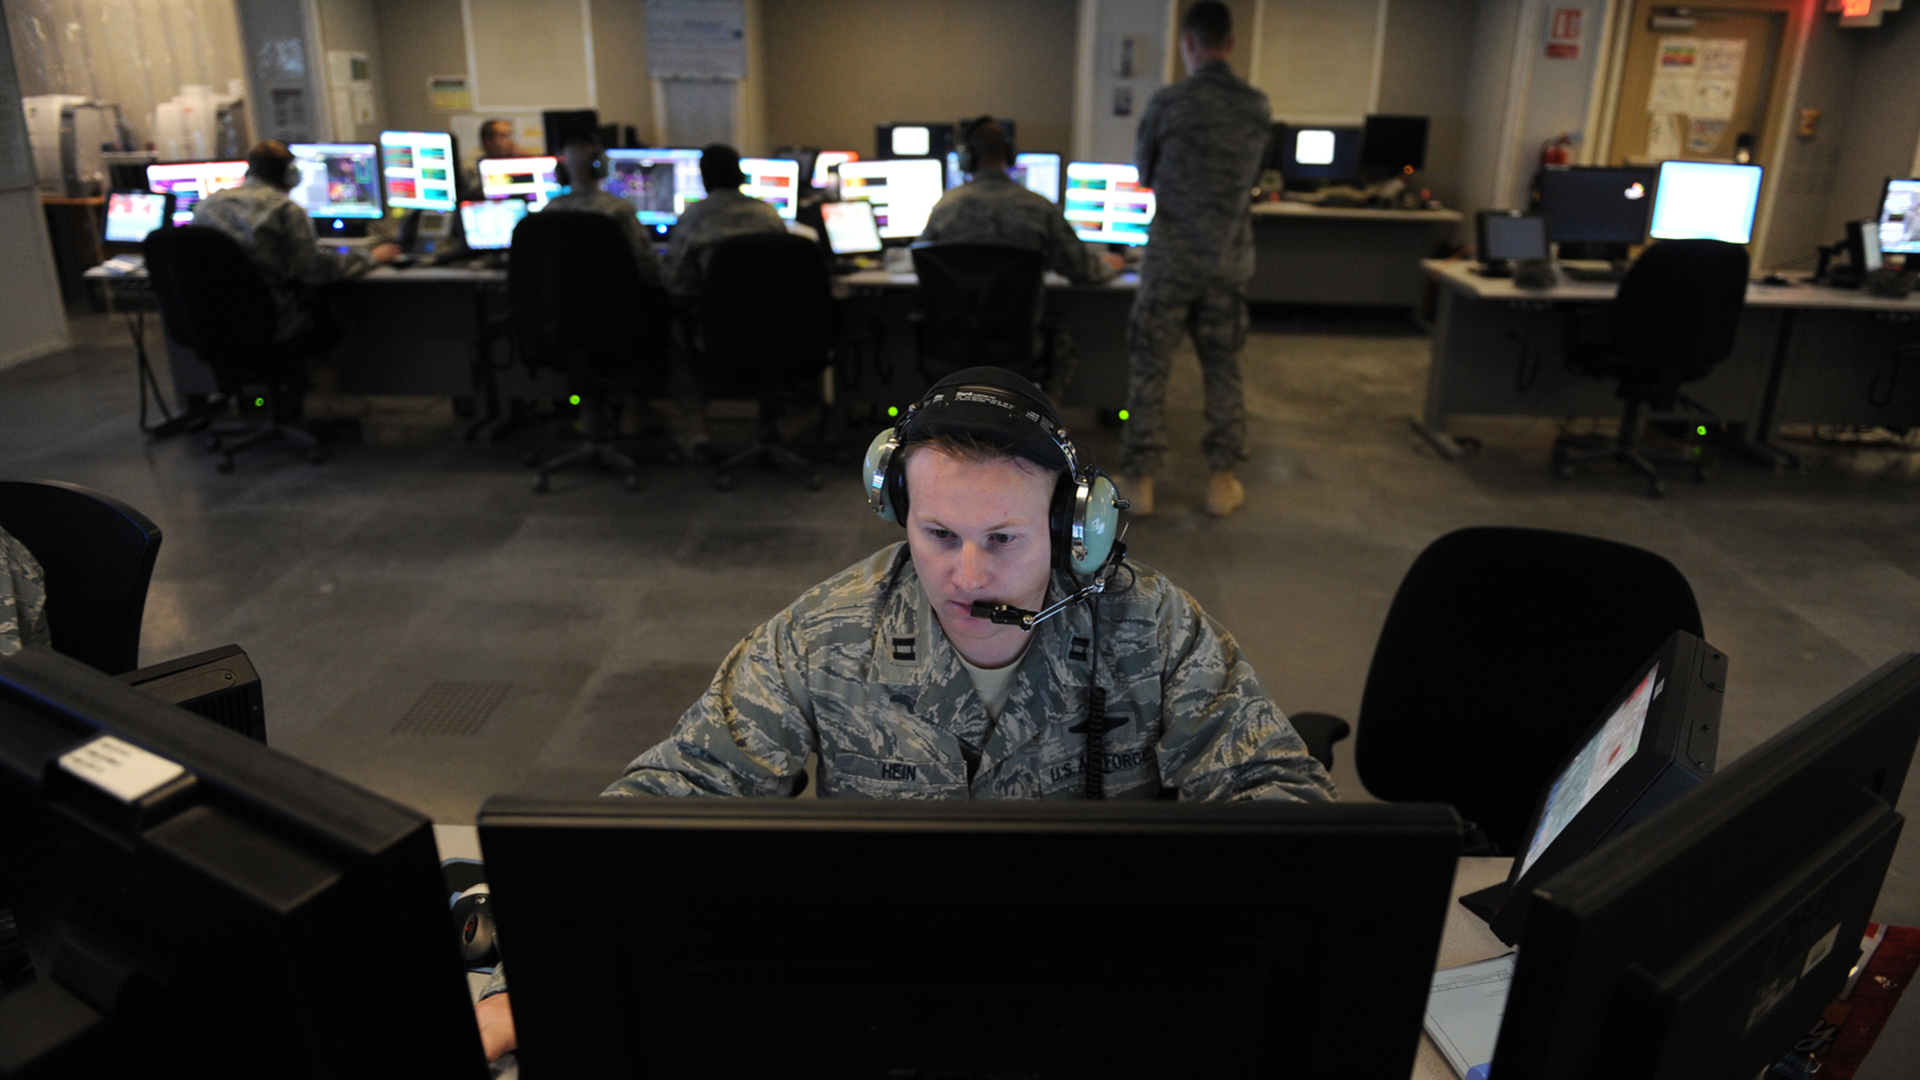 Image of man with headset in front of computer moniter